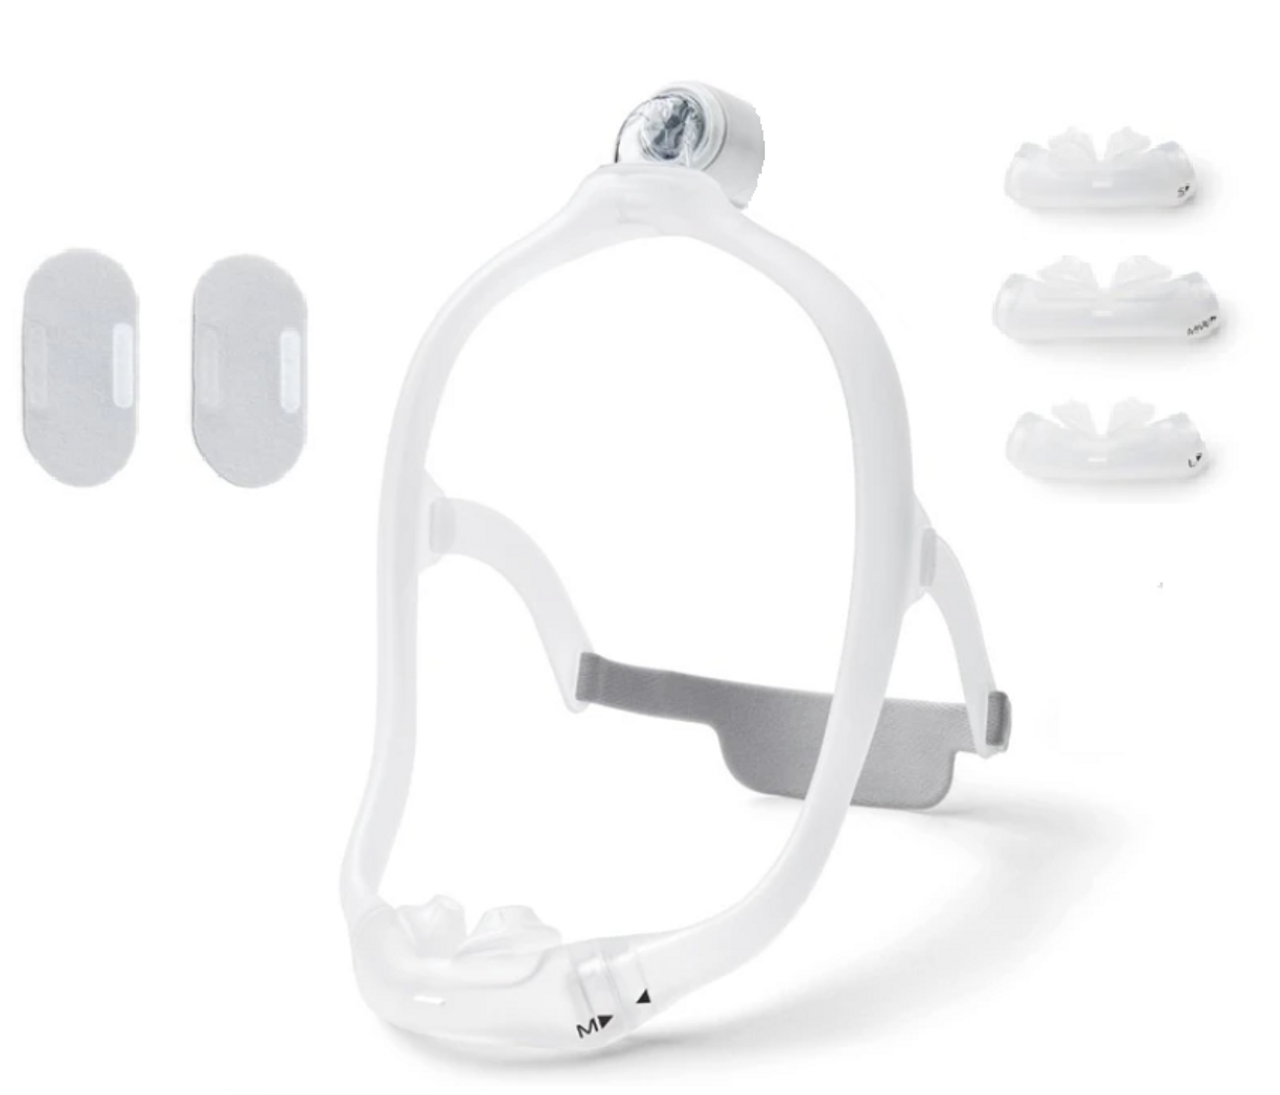 Philips Respironics Dreamwear Silicone Pillows mask Fitpack